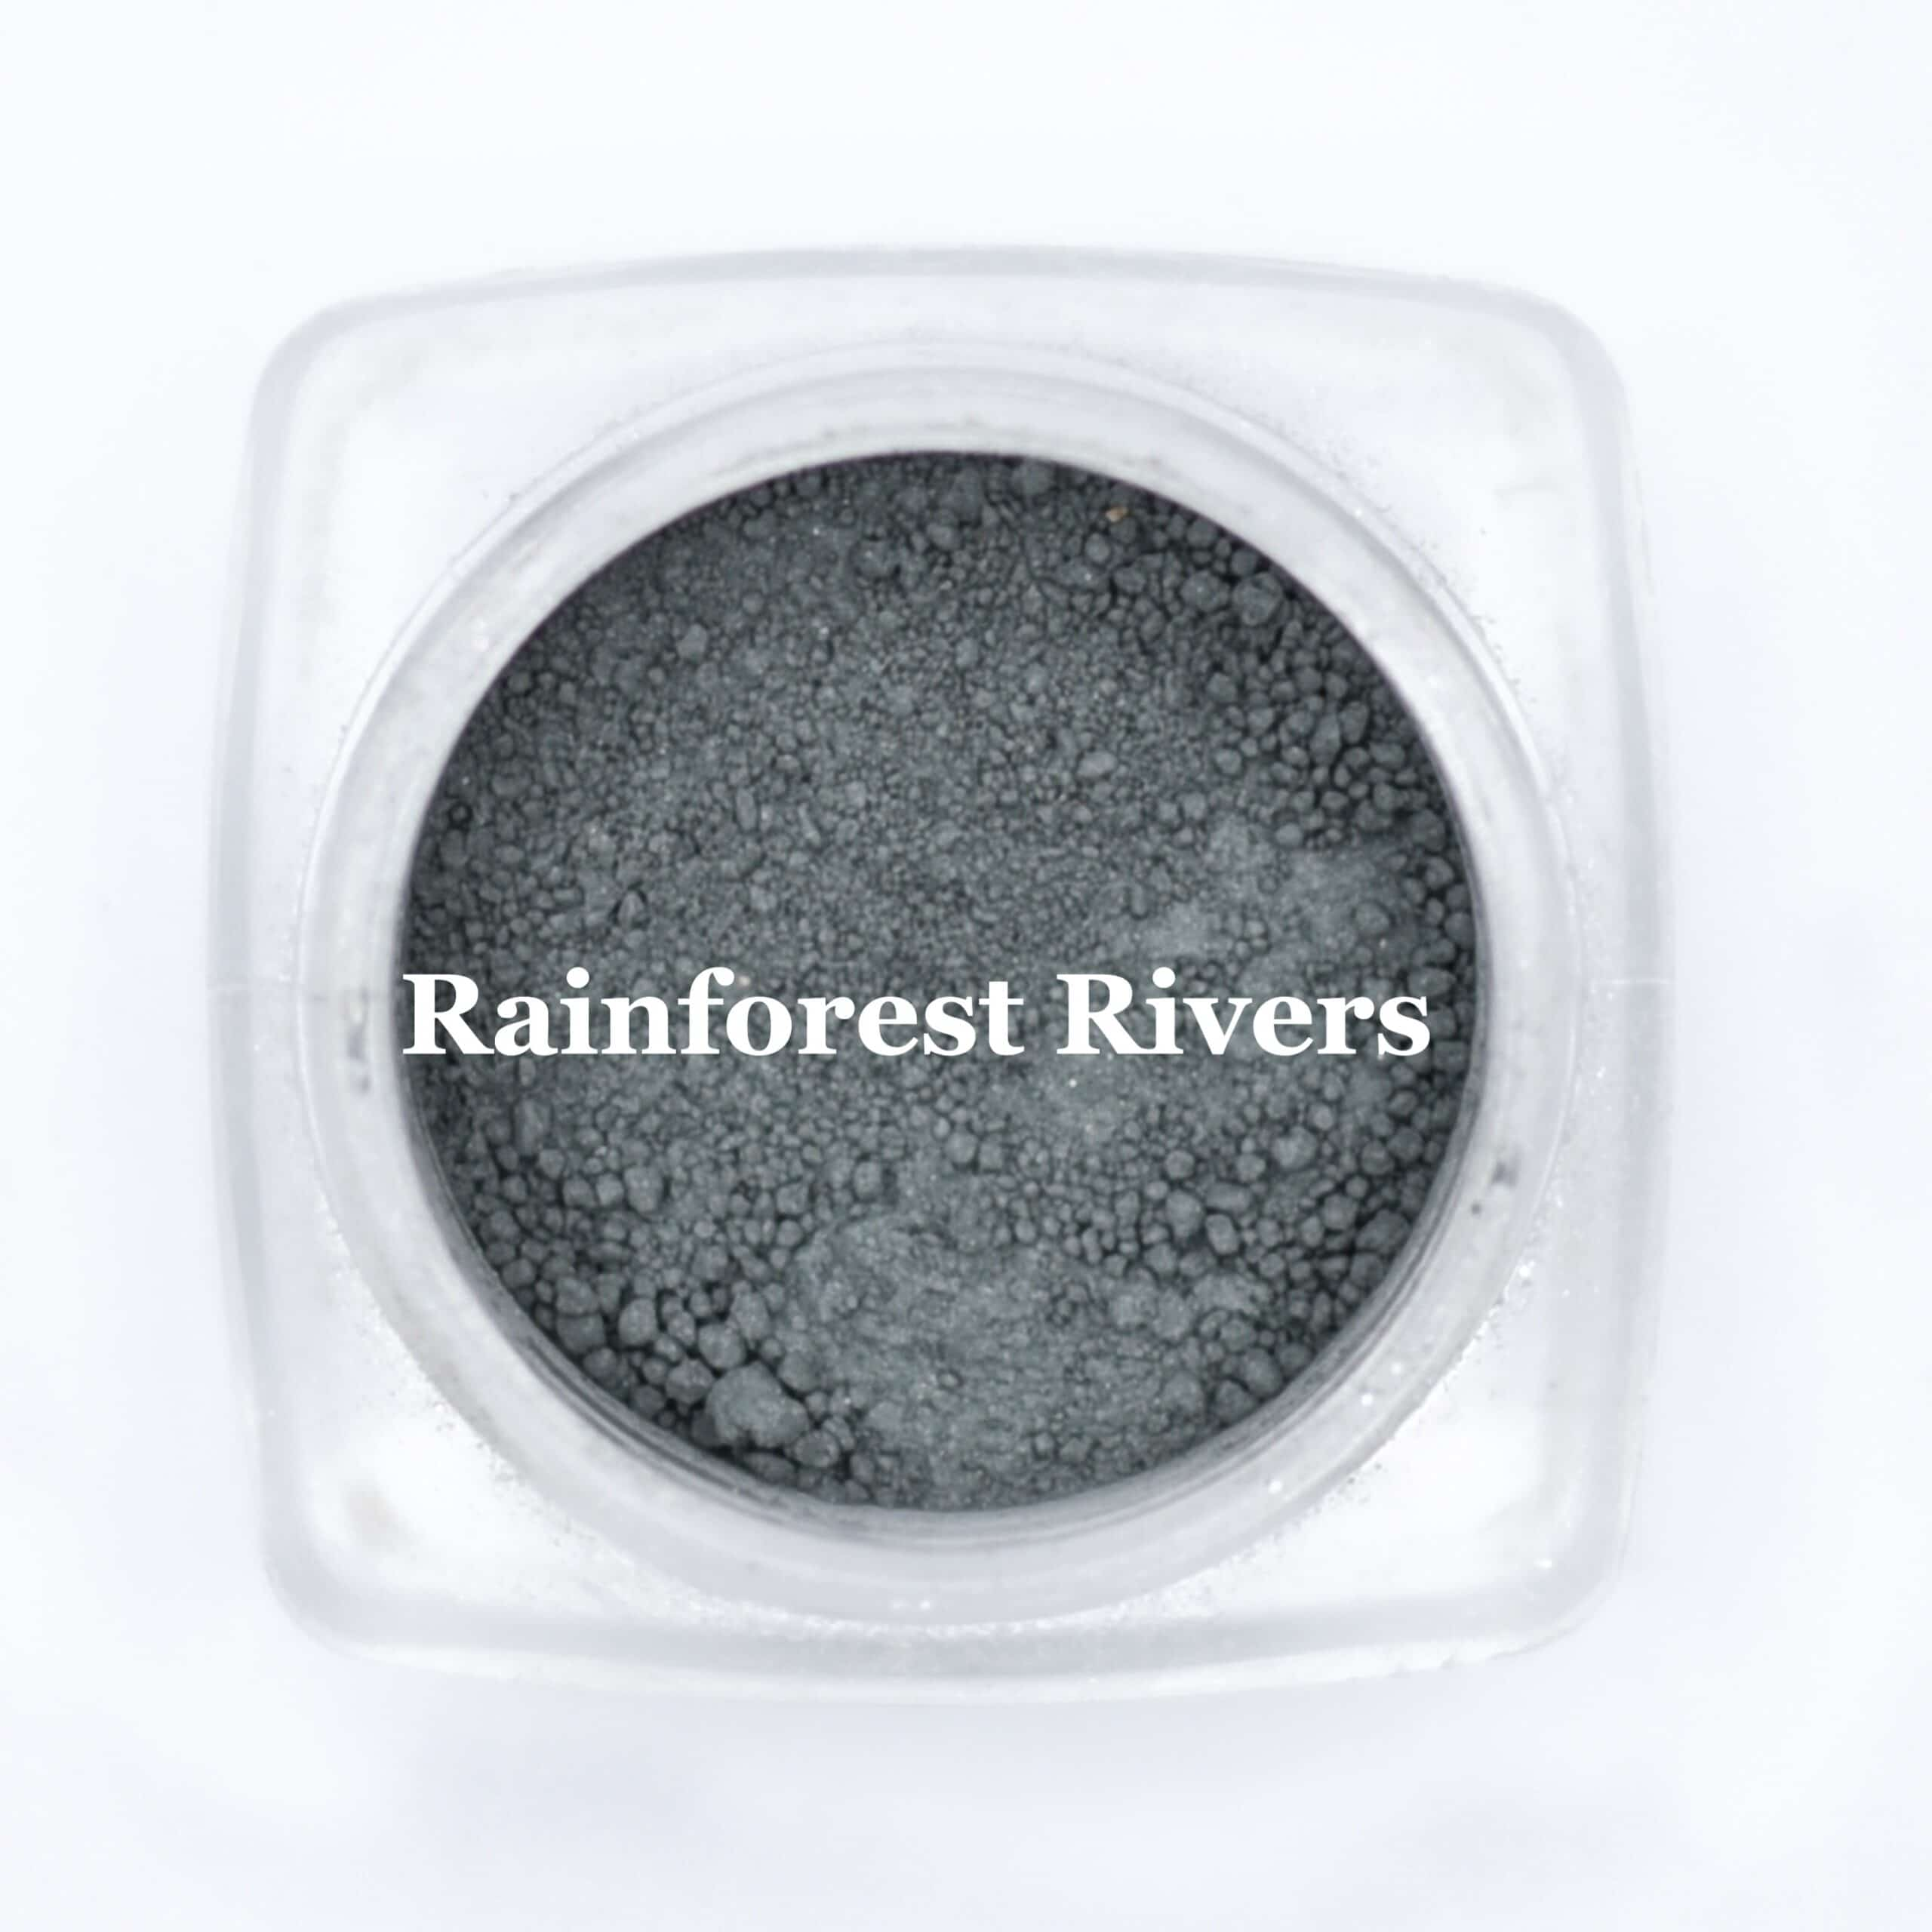 eye shadow rainforest rivers